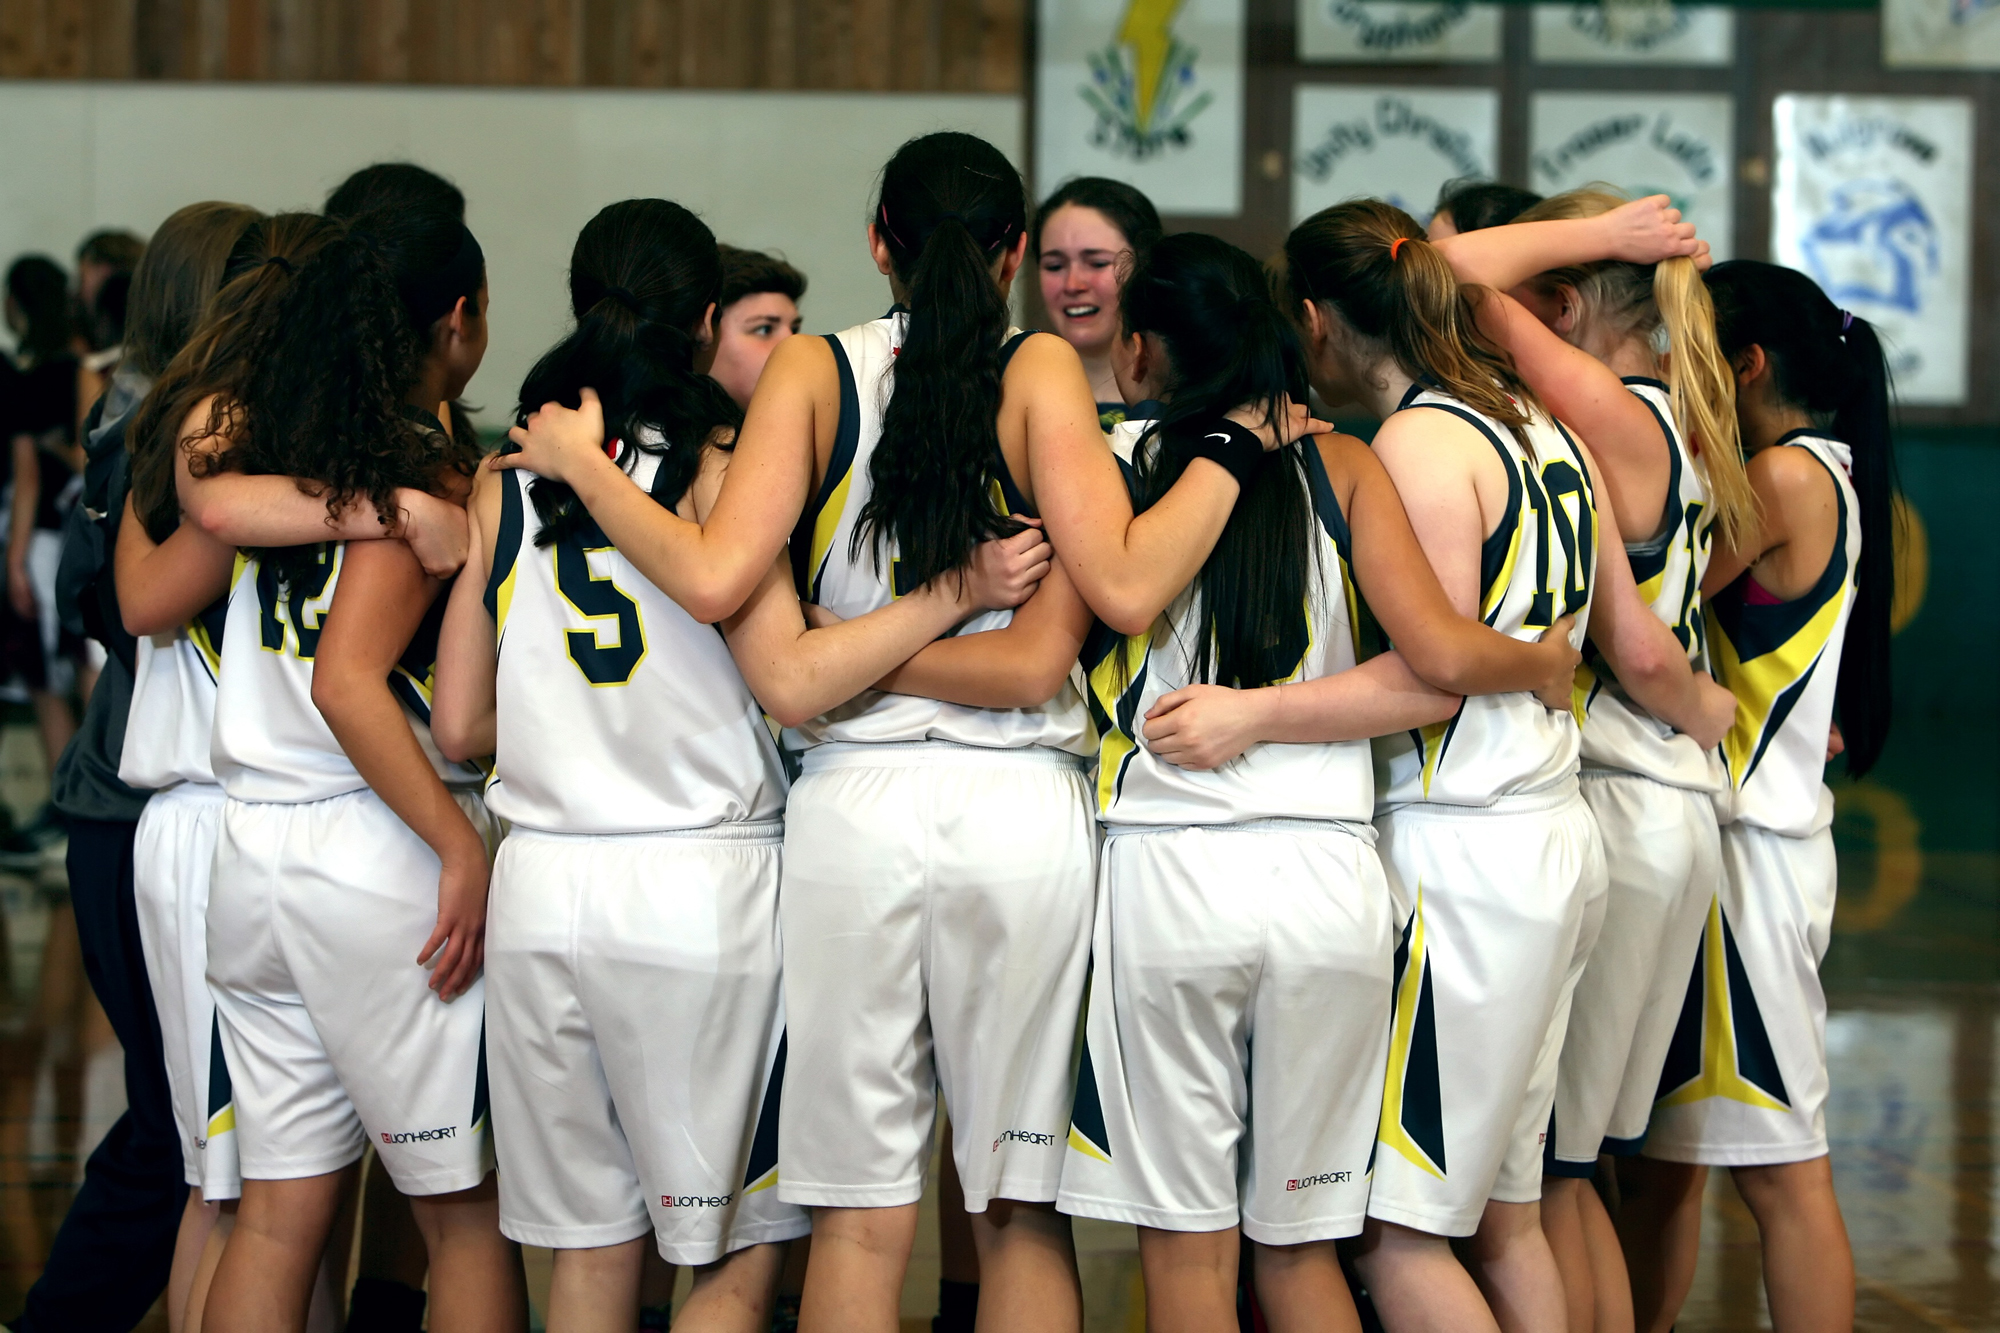 Girls Basketball Team giving each other moral support